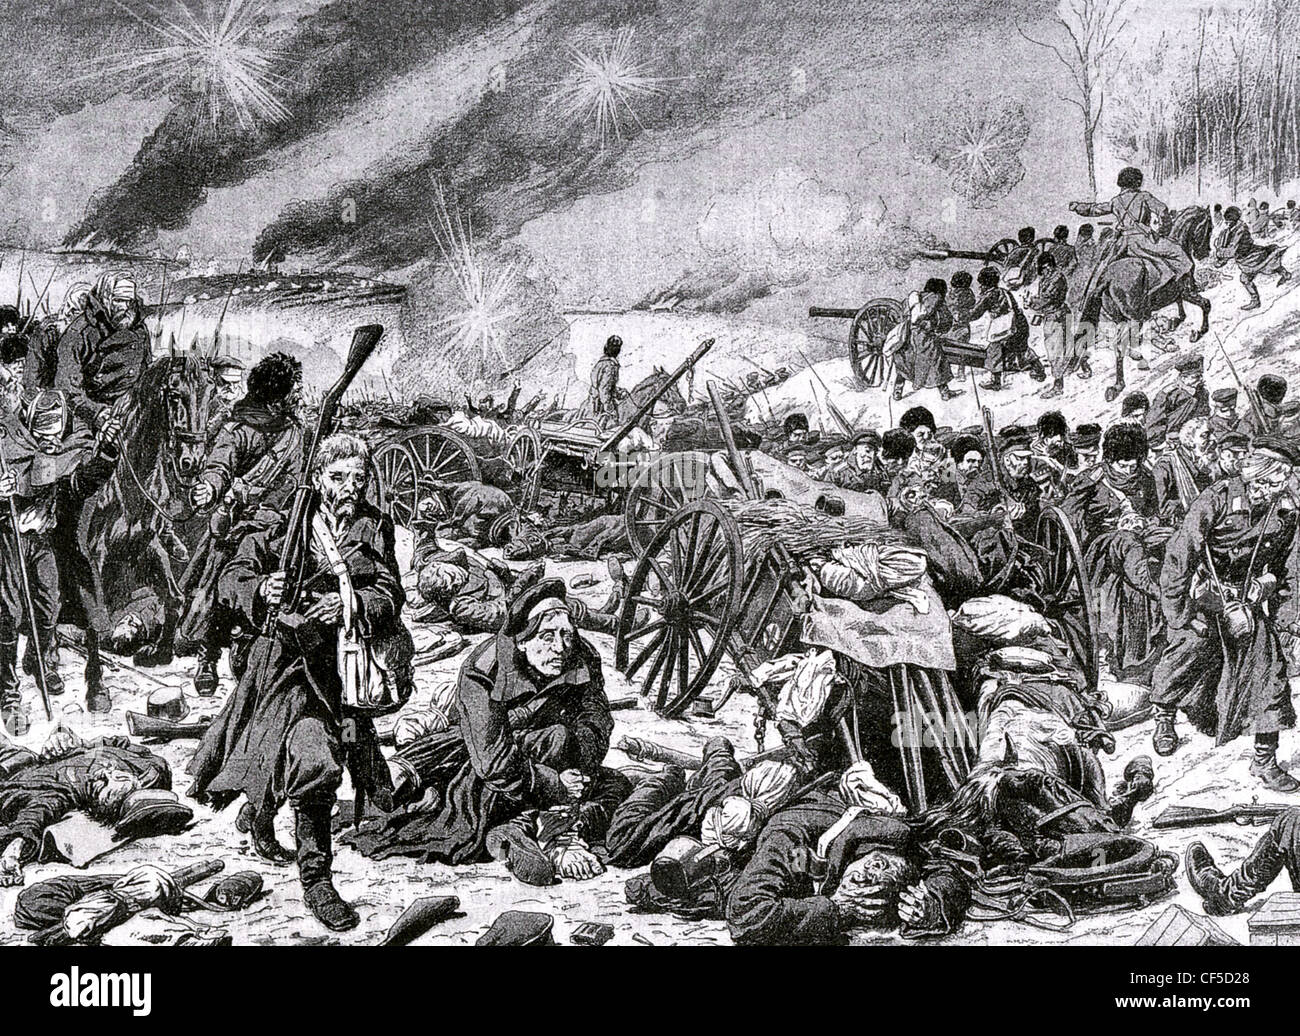 RUSSO-JAPANESE WAR  Russian troops at the Battle of Mukden 1905 - Stock Image